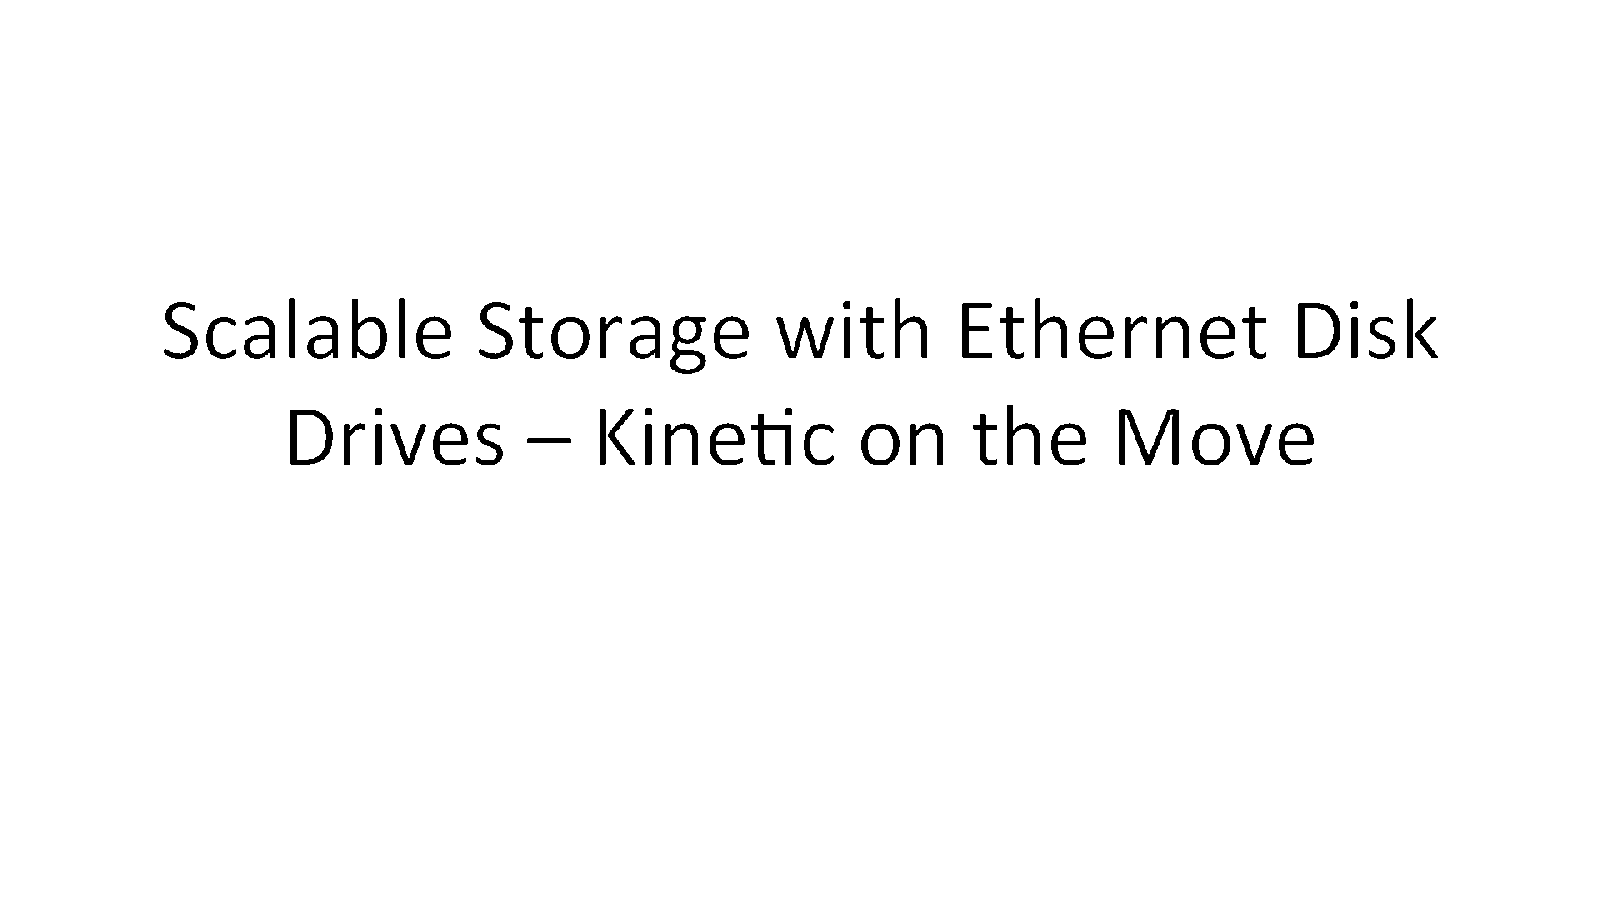 Scalable Storage With Ethernet Disk Drives - Kinetic On the Move